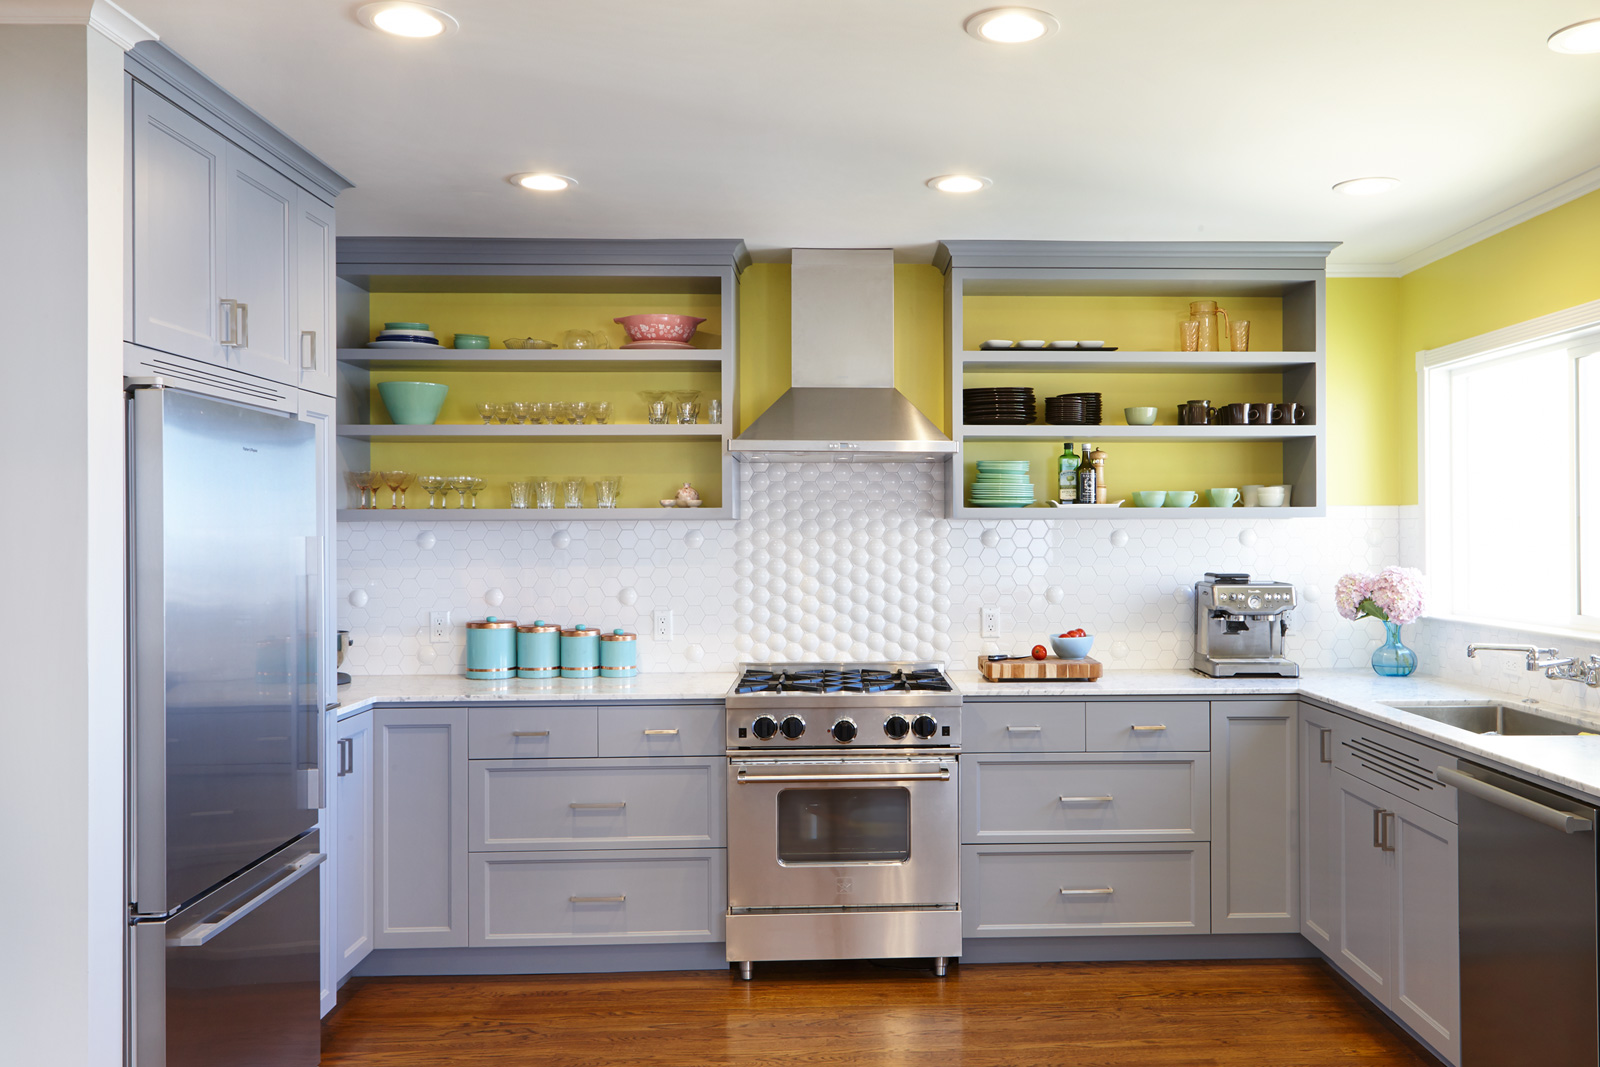 Best Paint for Kitchen Cabinets | Paint for Kitchens